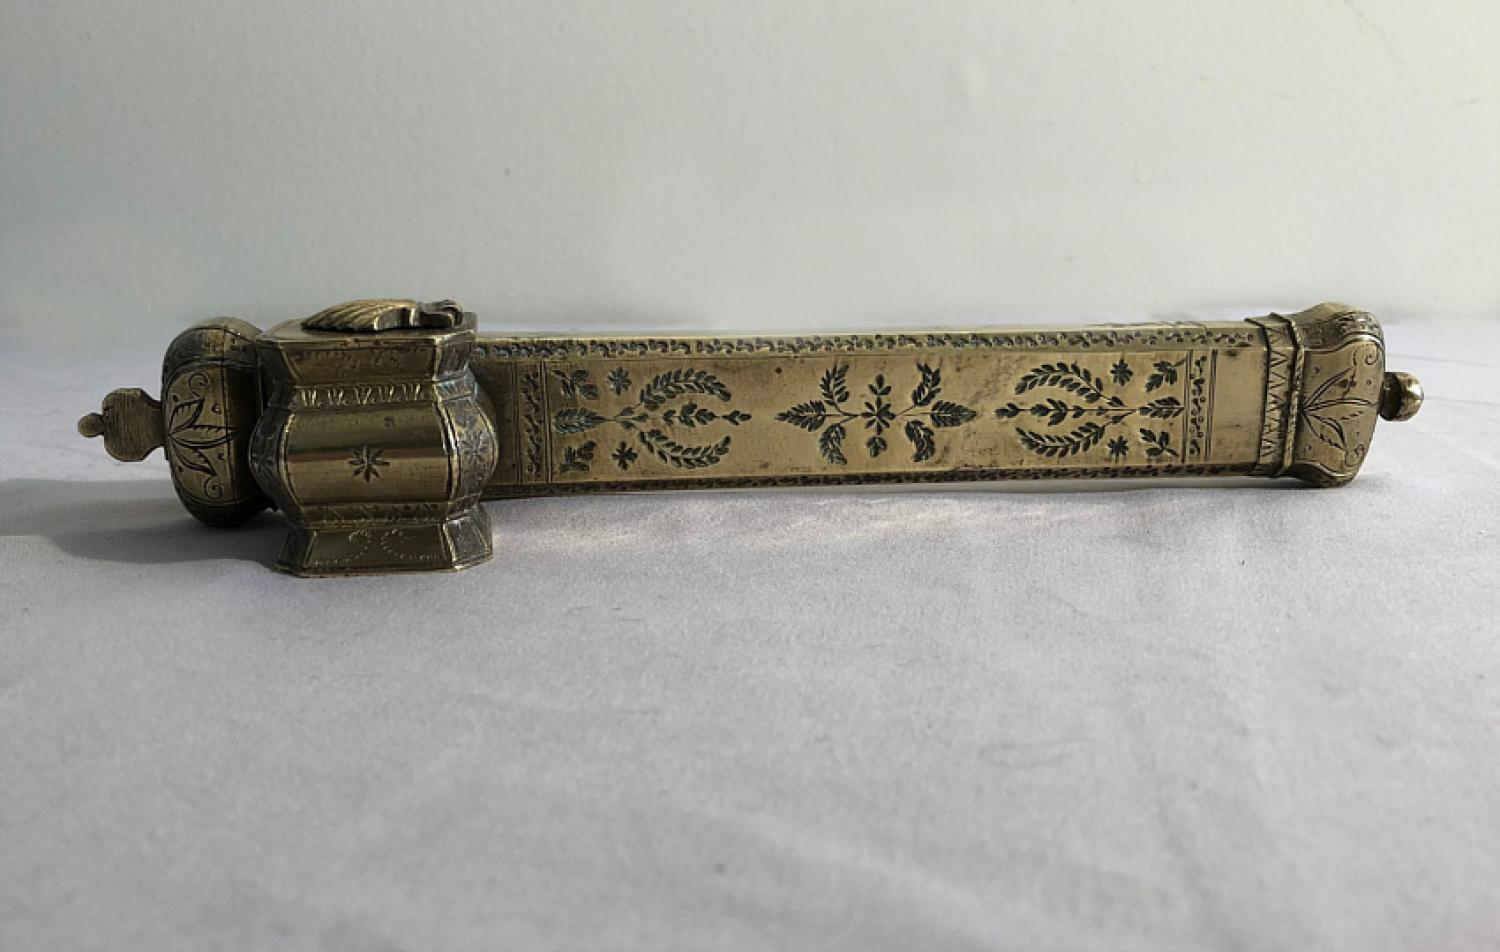 Ottoman scribes brass travel inkwell and pen holder c1860